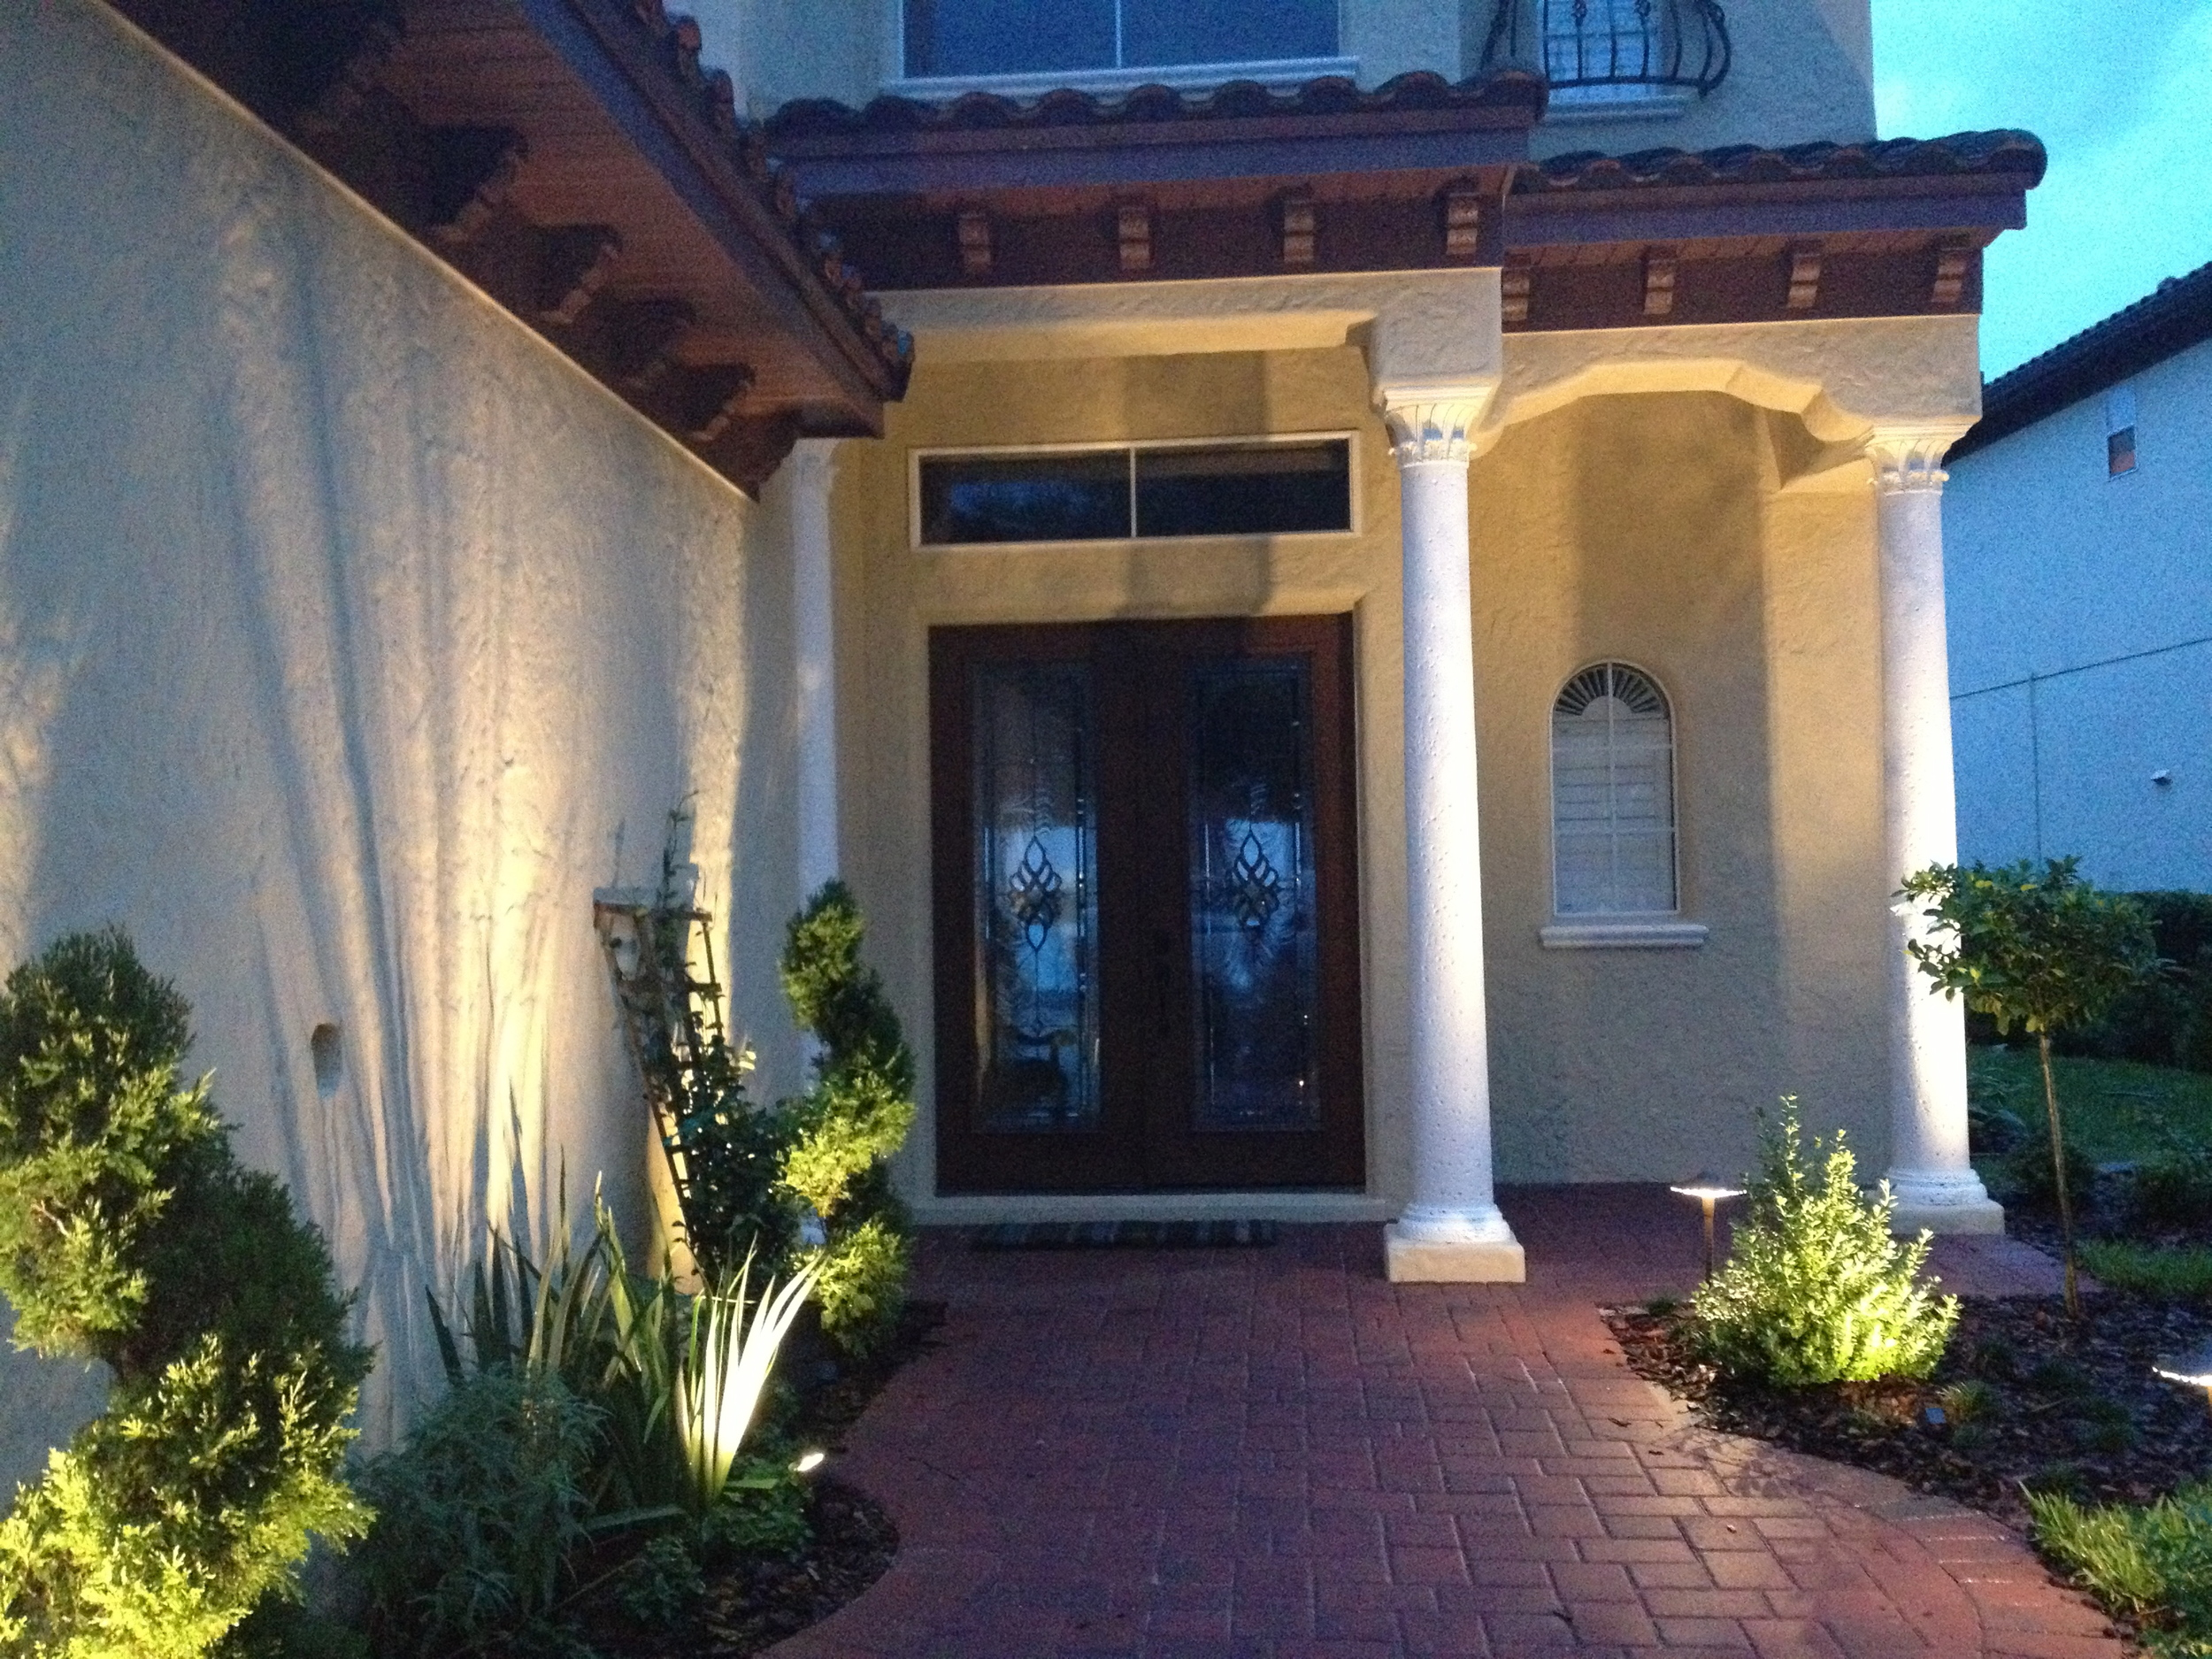 Completely Remodeled Front Entry with Landscape Lighting, New Exterior Paint for the Entire House & New Pavers